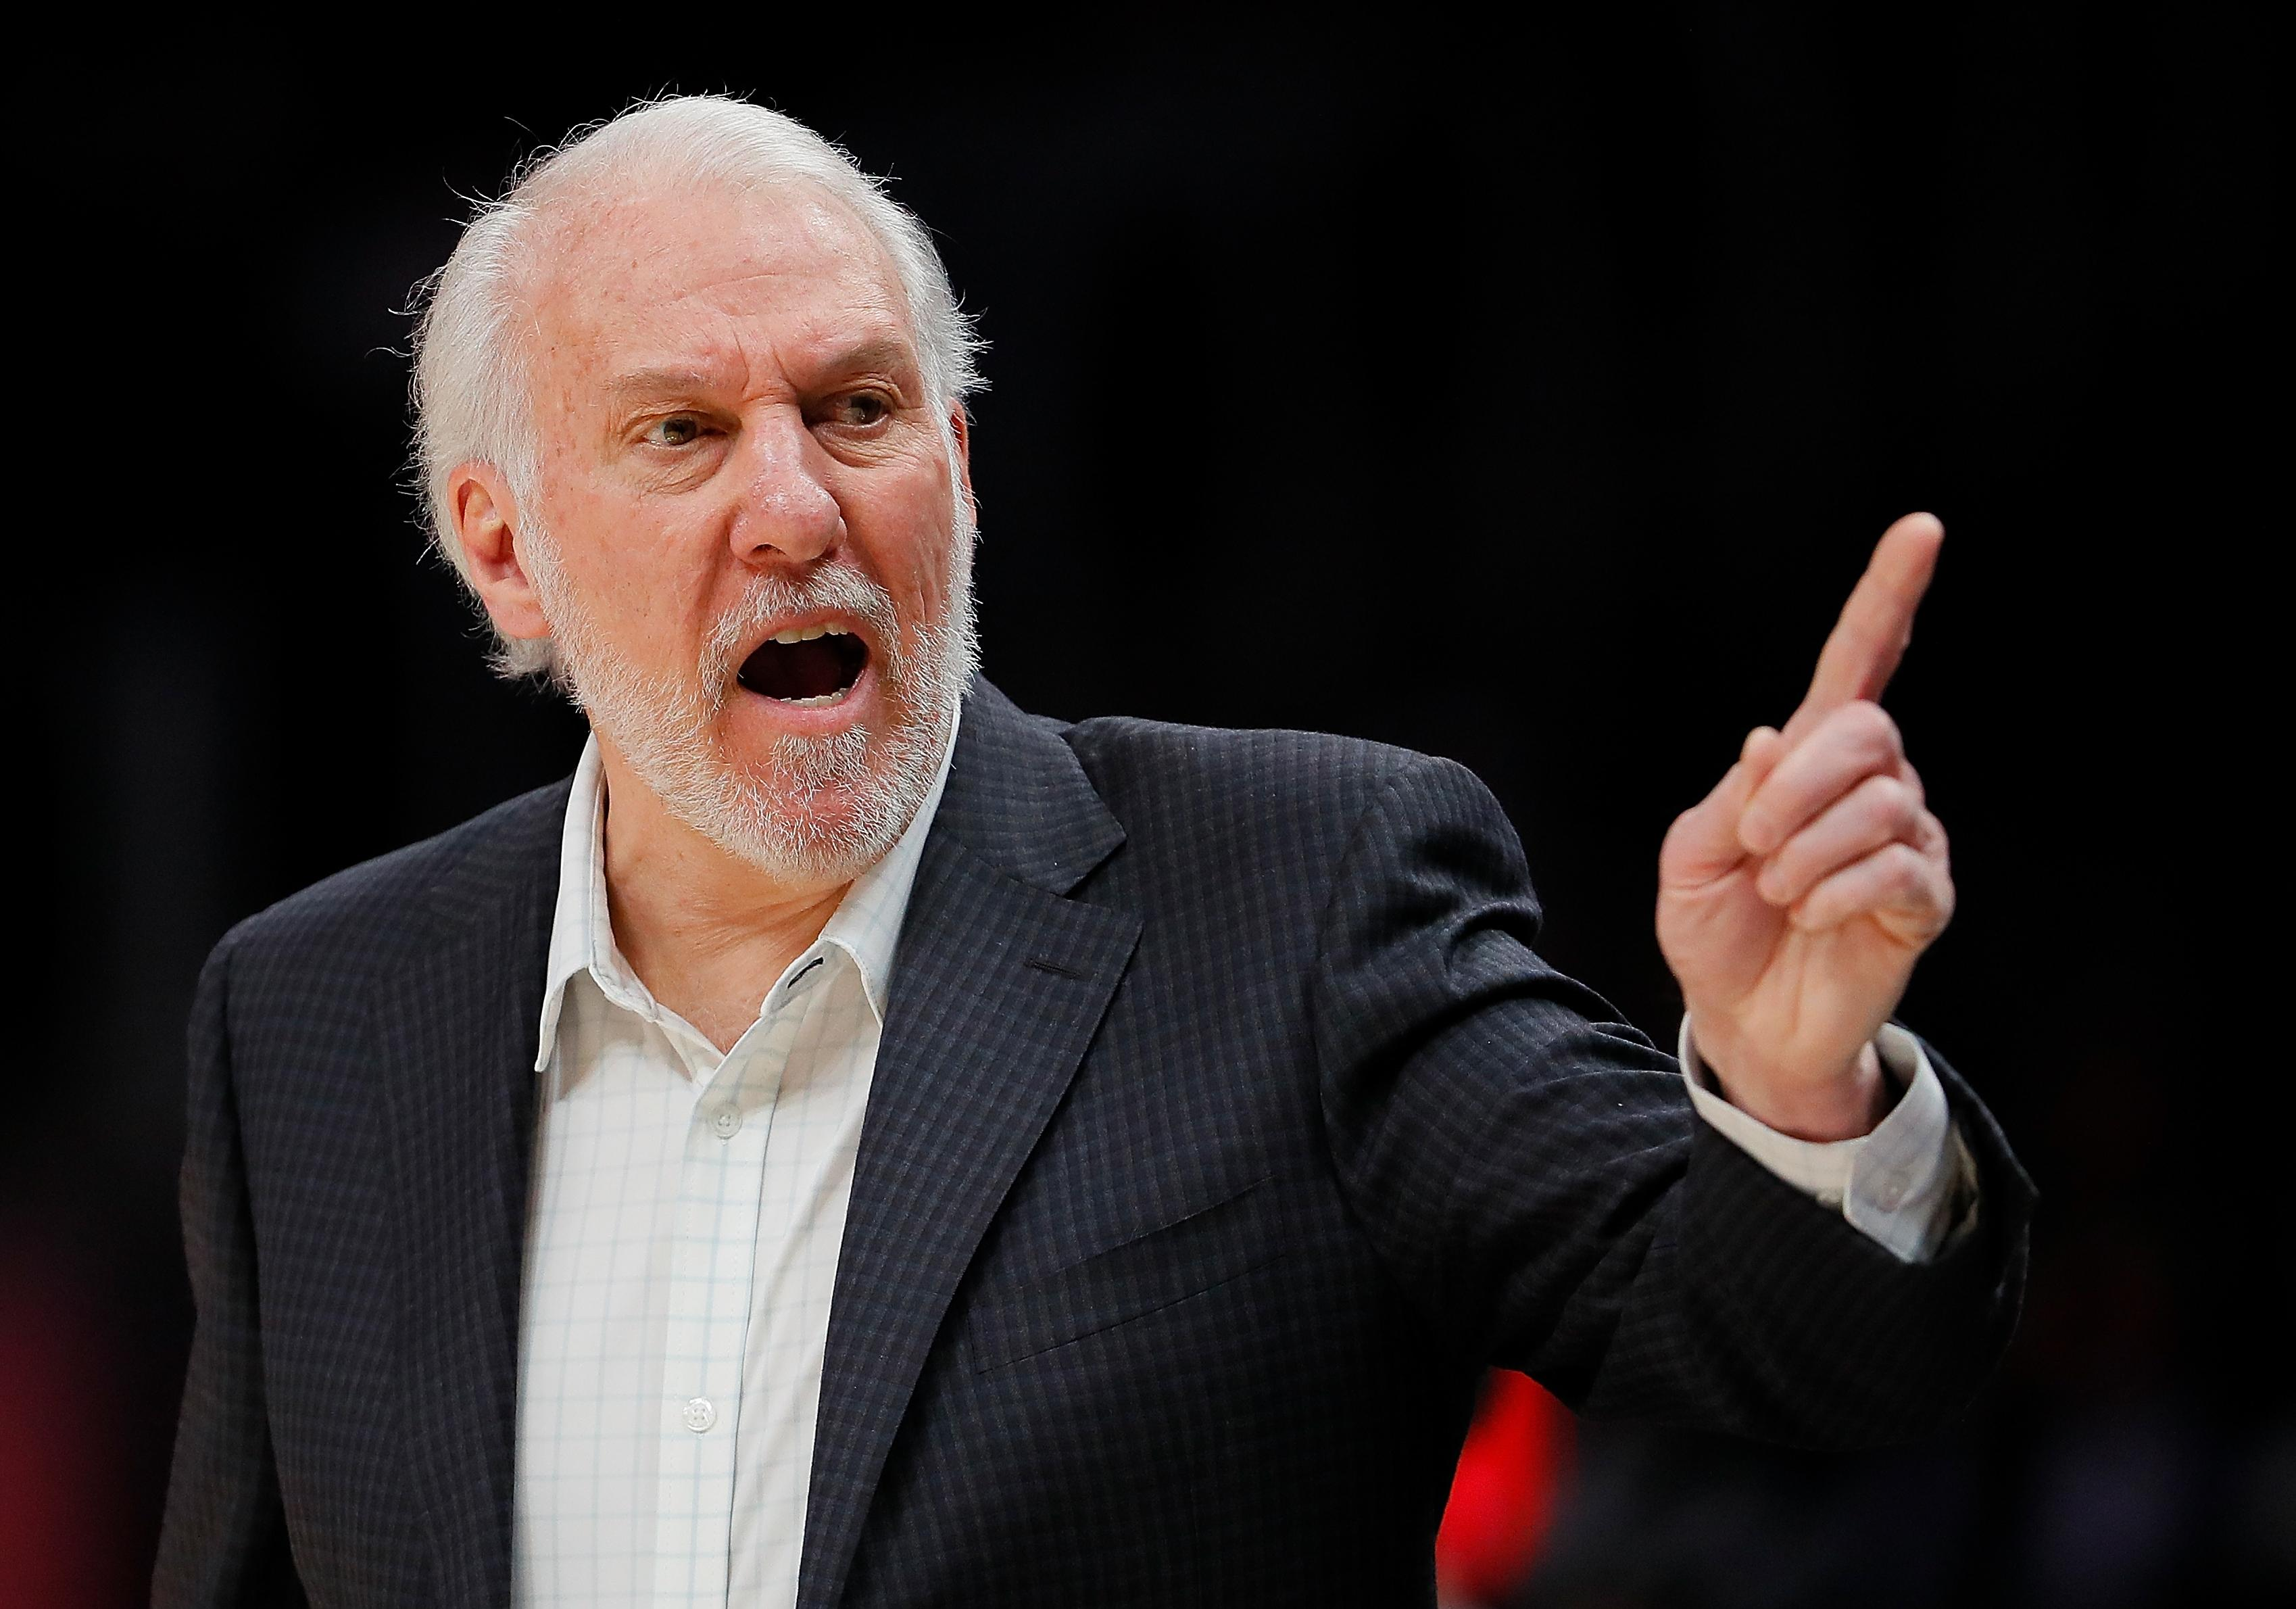 Gregg Popovich unleashes fiery statement on Trump: 'What we have ...